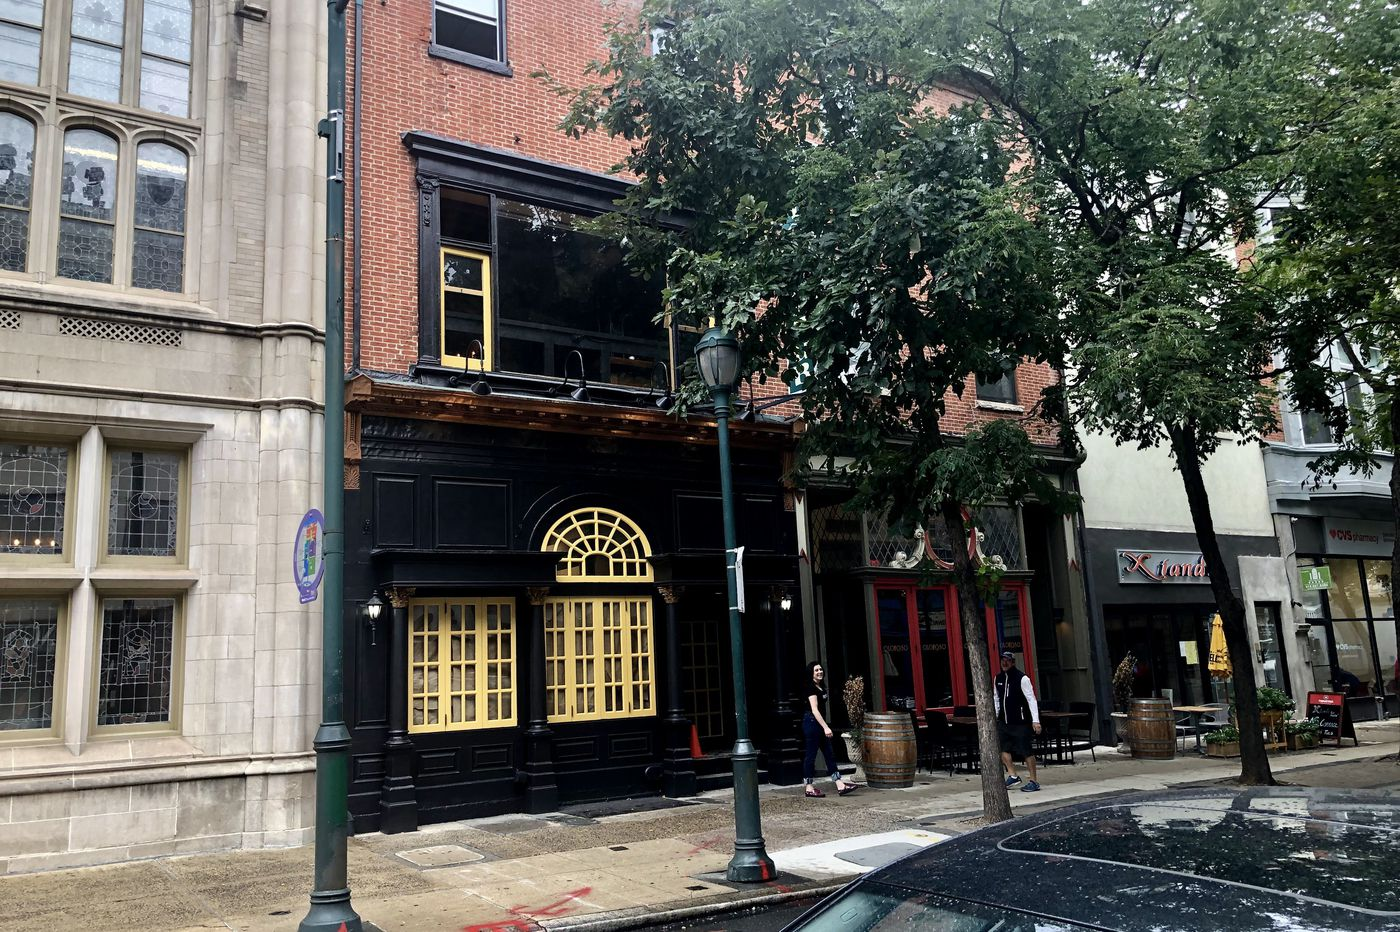 Halloween-themed bars to serve boos in Center City this fall